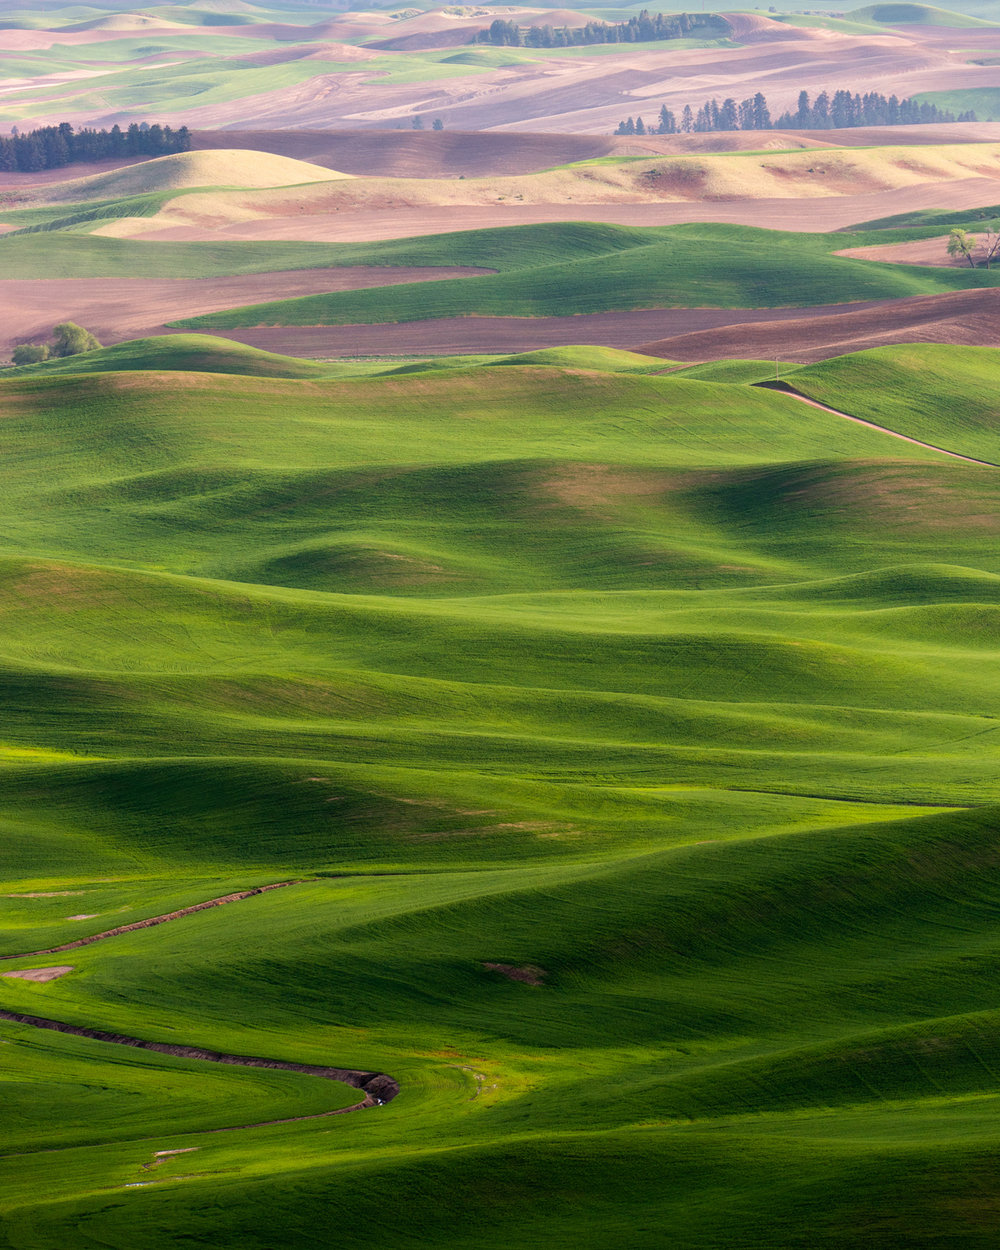 Wasim Muklashy Photography_Tesla Trip_Columbia River Gorge_Oregon_Washington_Palouse_113.jpg